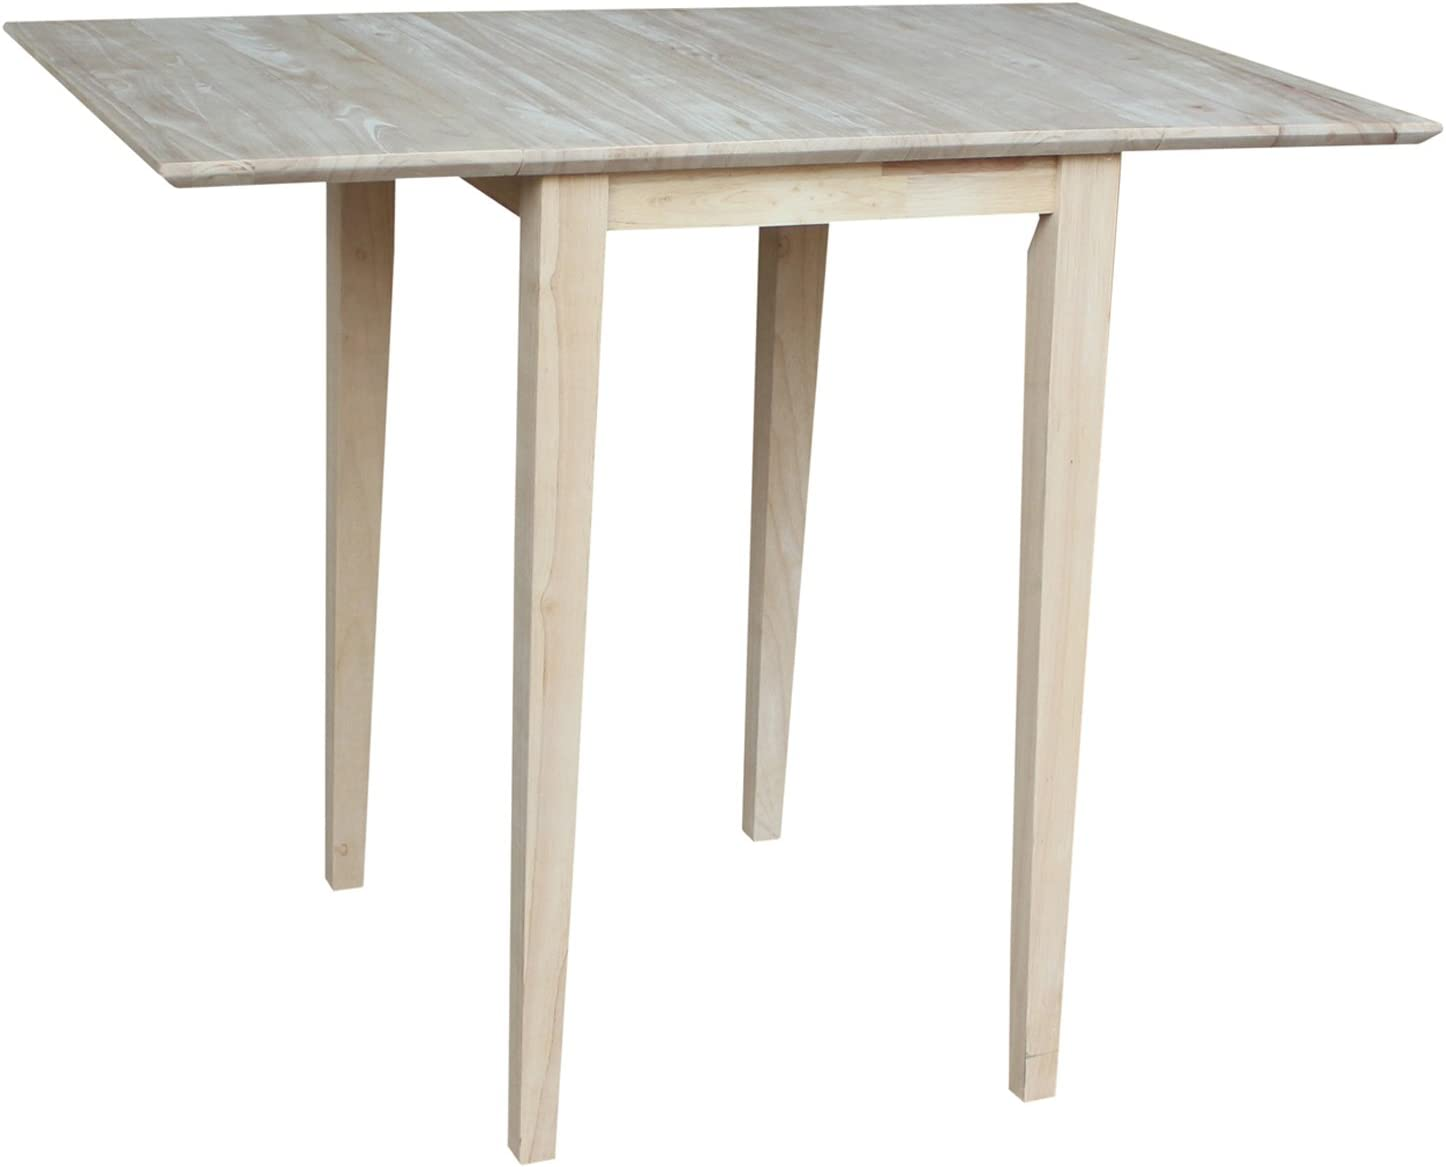 International Concepts Small Drop-leaf Table, Unfinished